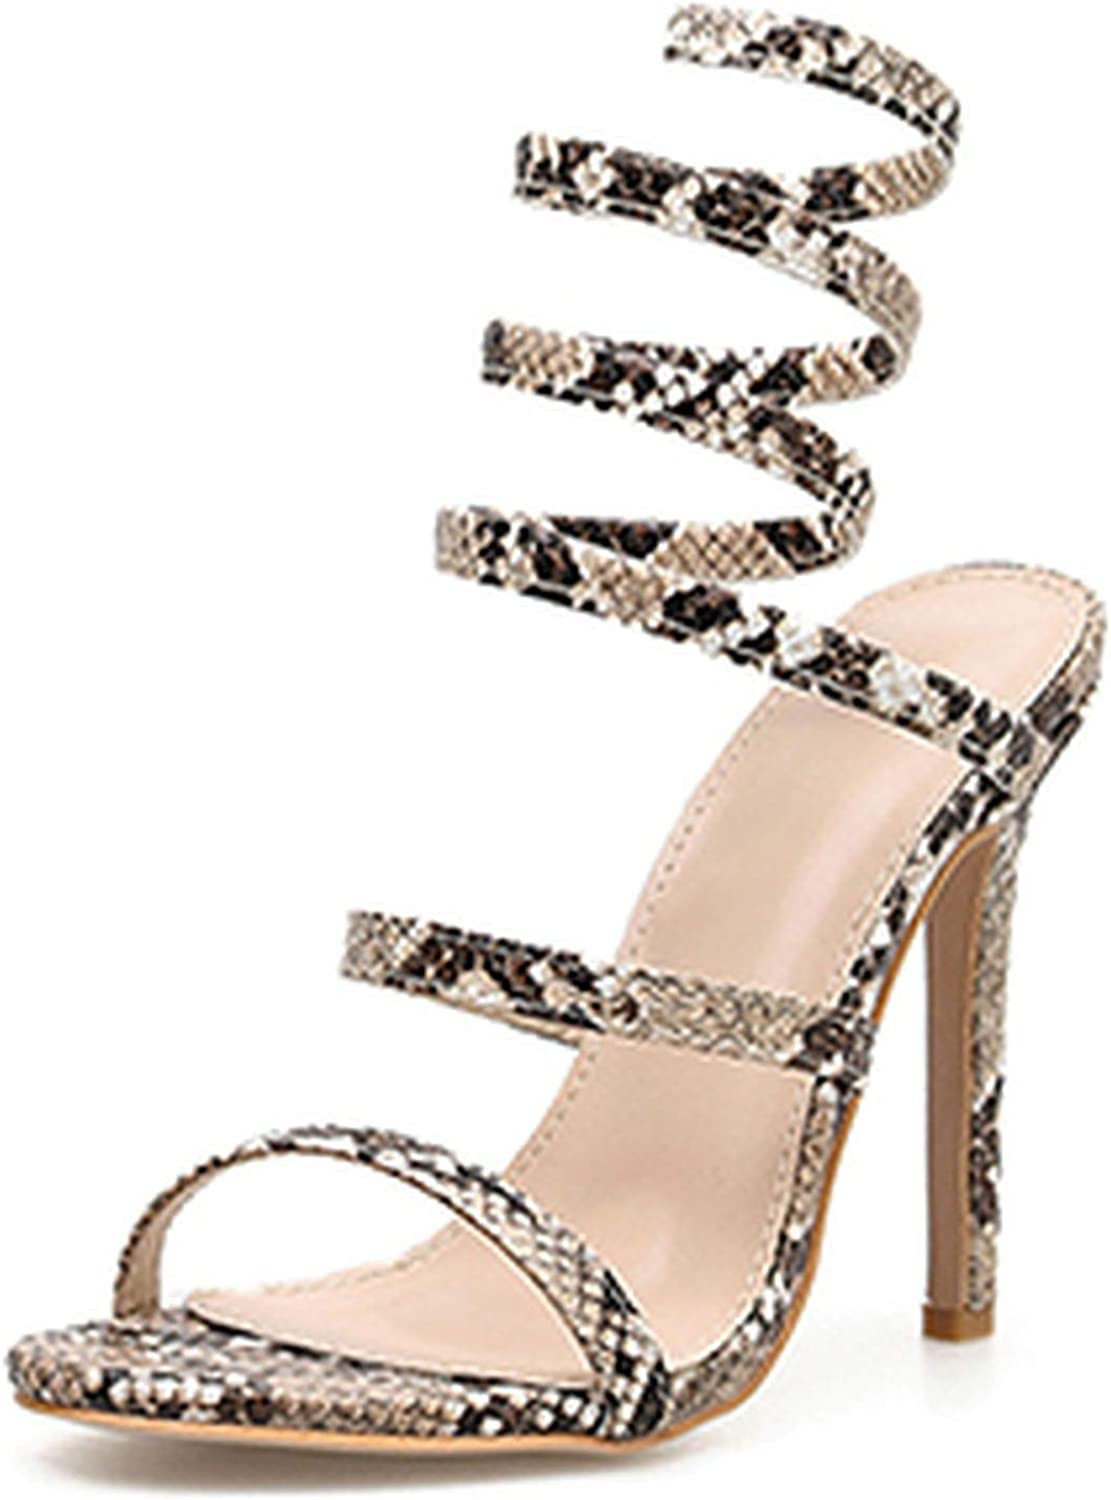 HuangKang Serpentine Gladiator Heels Sandals shoes Sexy Thin Heel Women Peep Toe Ankle Strap shoes